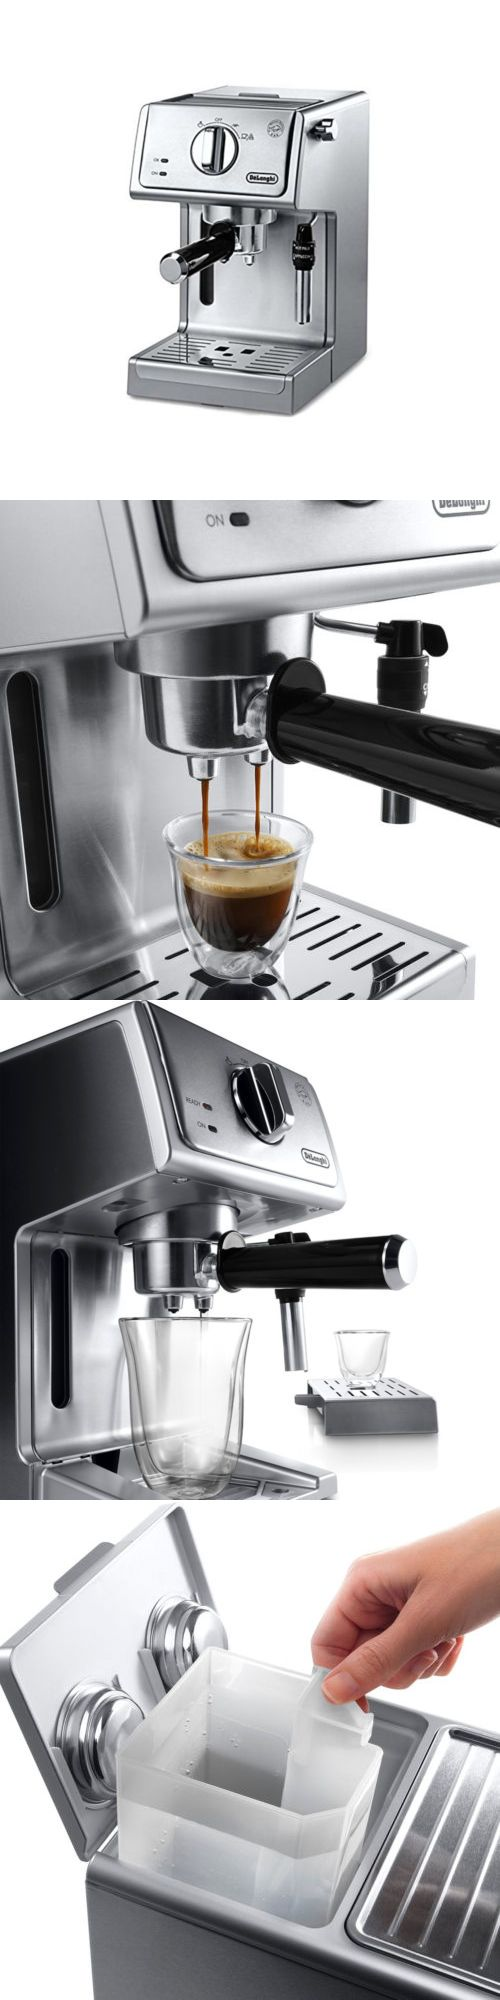 Espresso Machines 38252: De Longhi Ecp3630 15 Bar Pump Espresso And Cappuccino Machine, Stainless Steel -> BUY IT NOW ONLY: $199.95 on eBay!